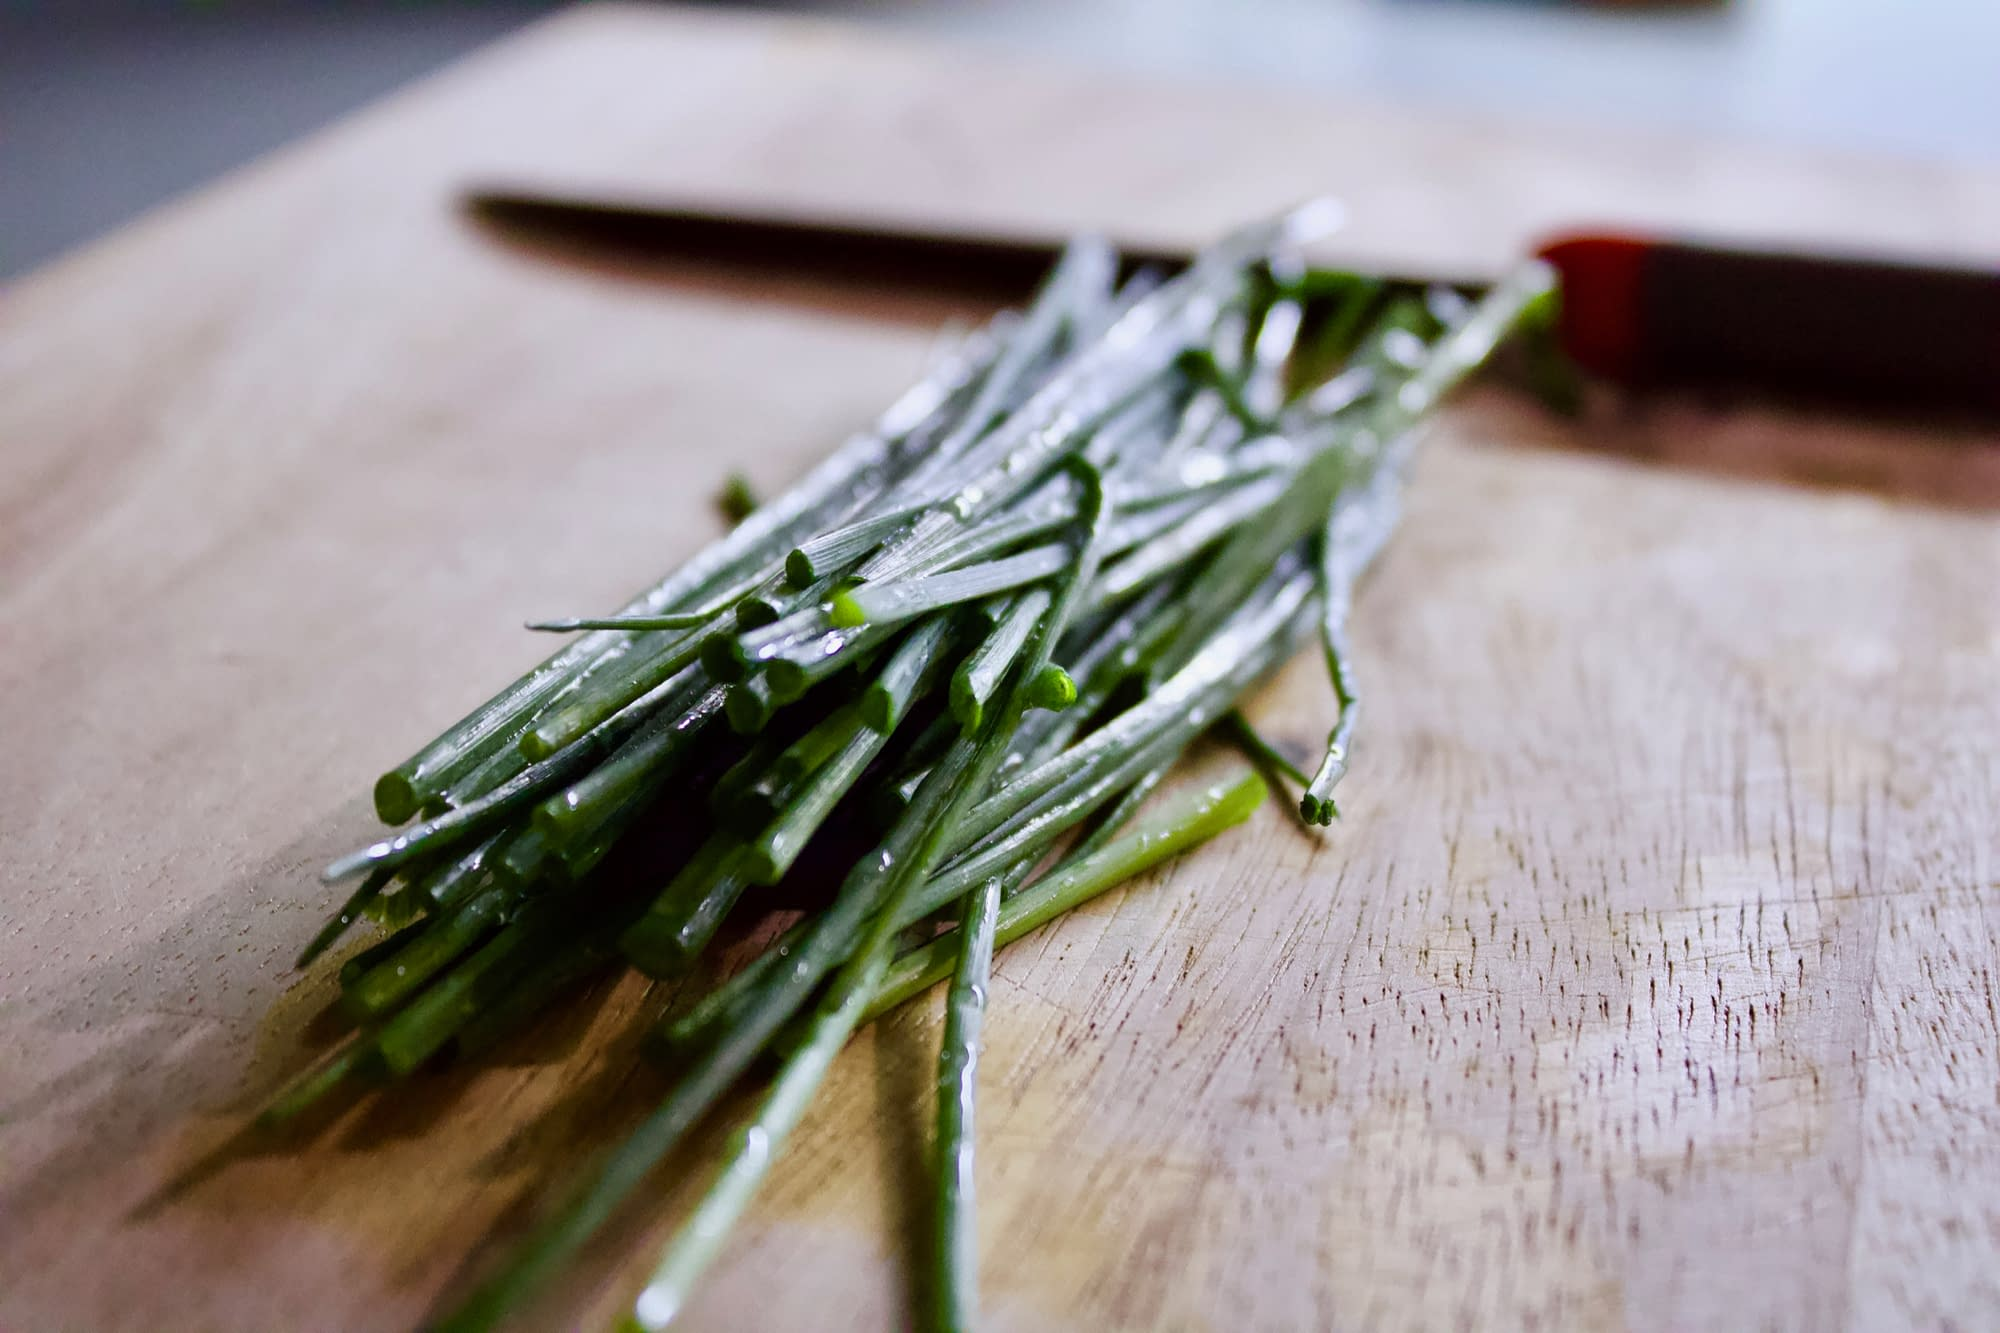 Chives on a cutting board.